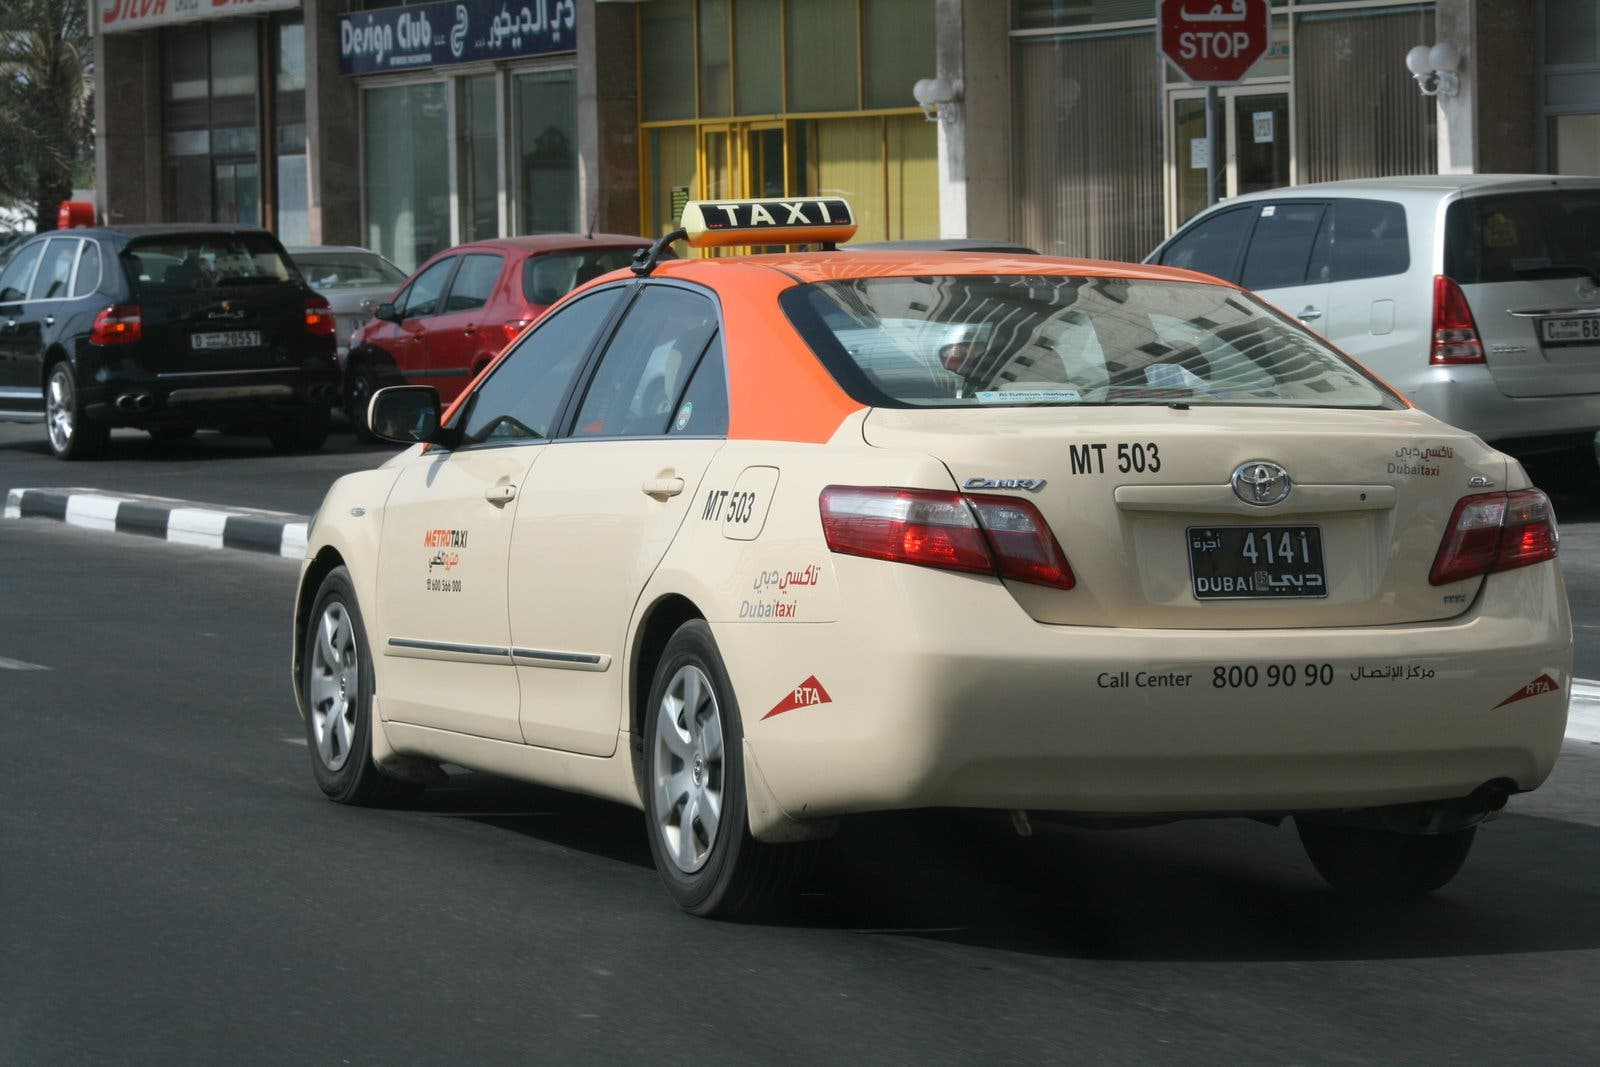 Where the expat magic could have happened: a Dubai taxi